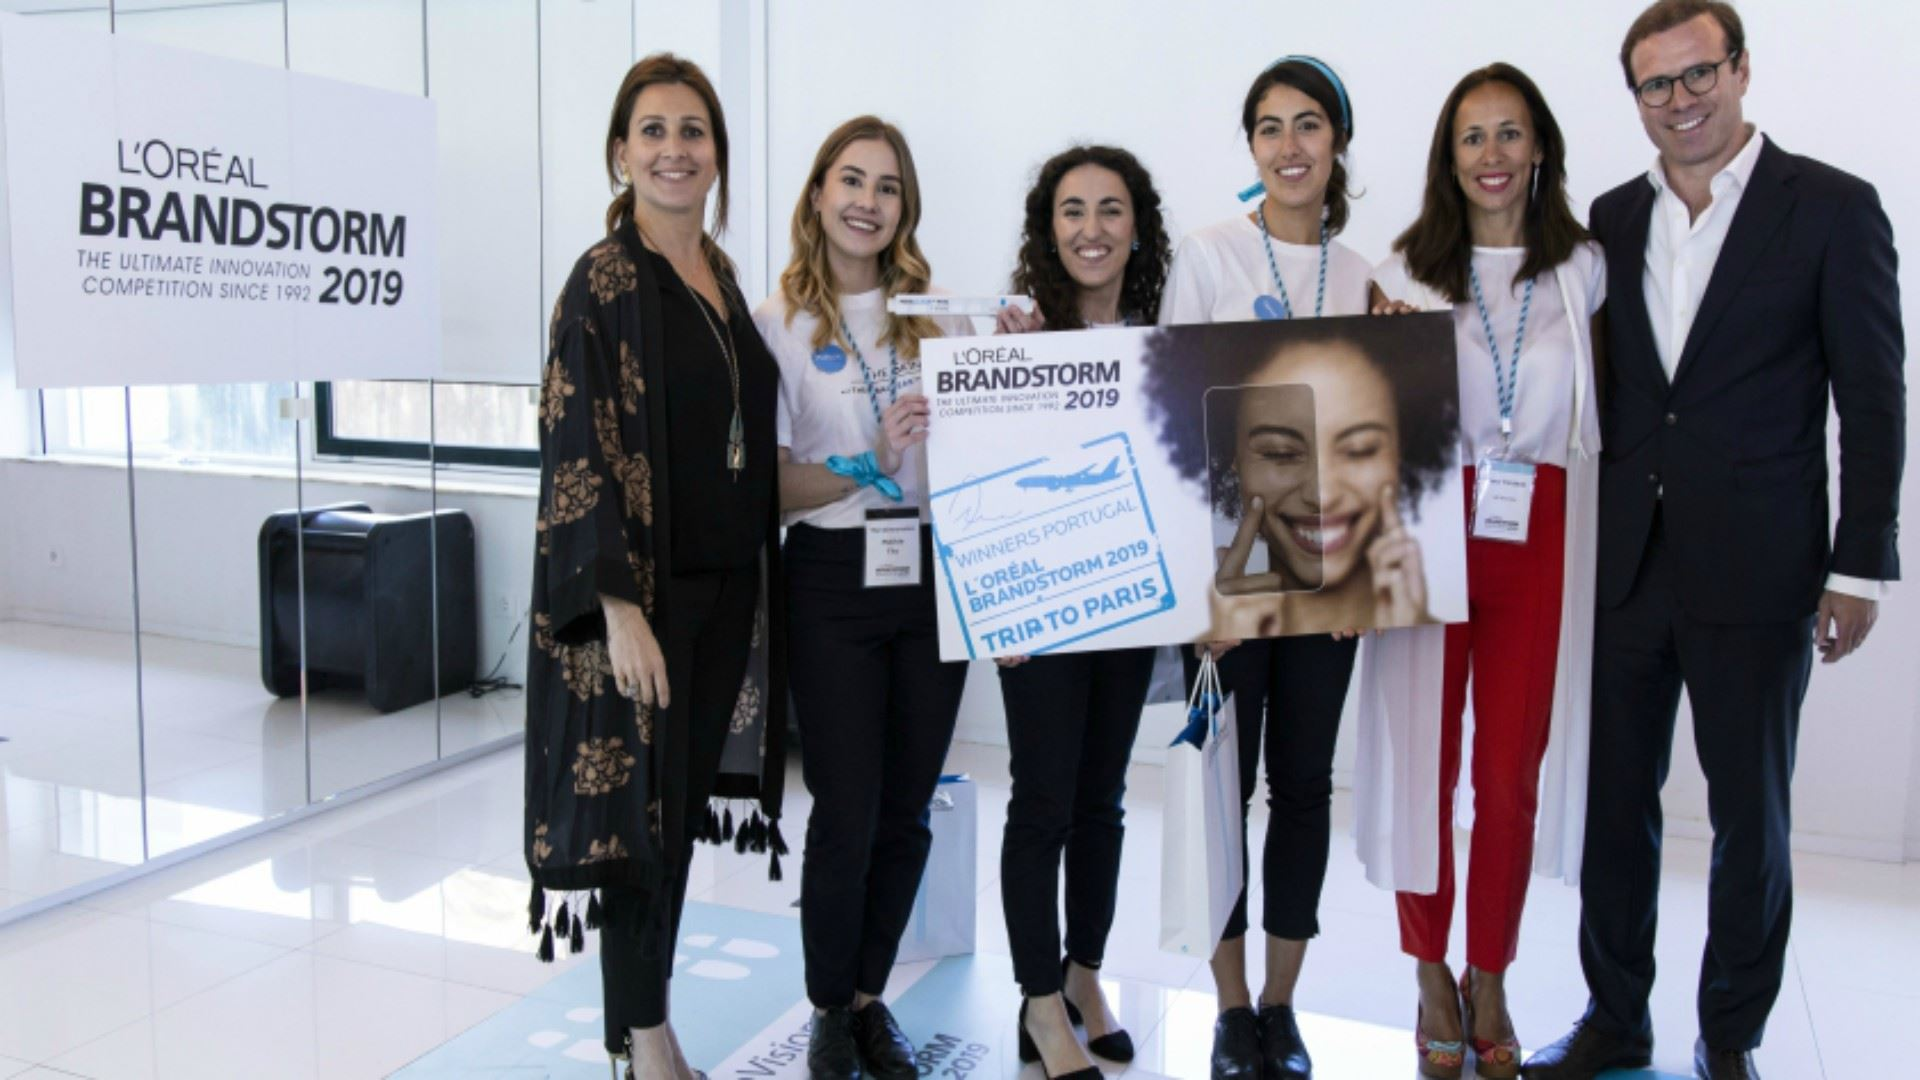 Nova SBE Students will be at the World Finals of Brandstorm 2019